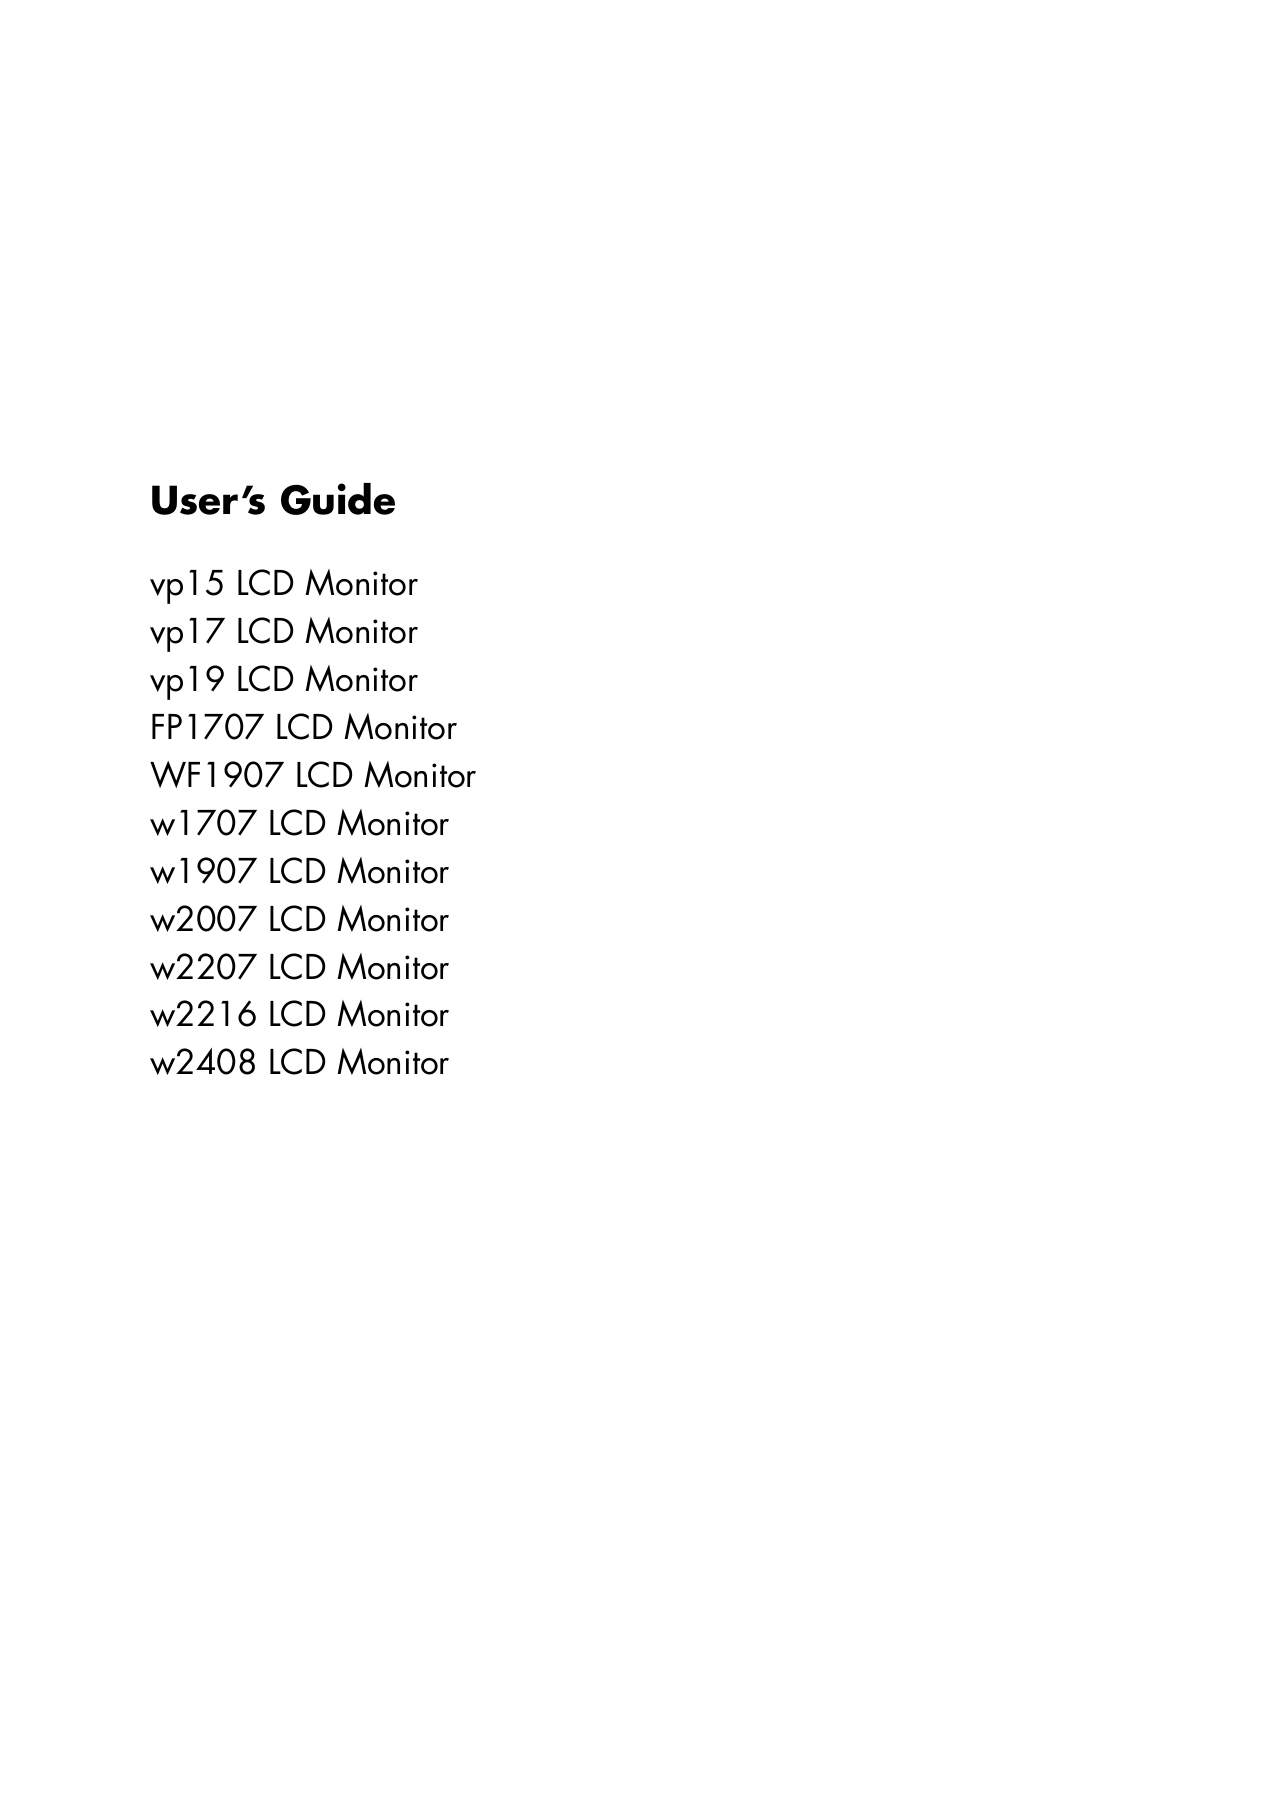 Mnl-4948] hp w1907 lcd monitor service manual | 2019 ebook library.